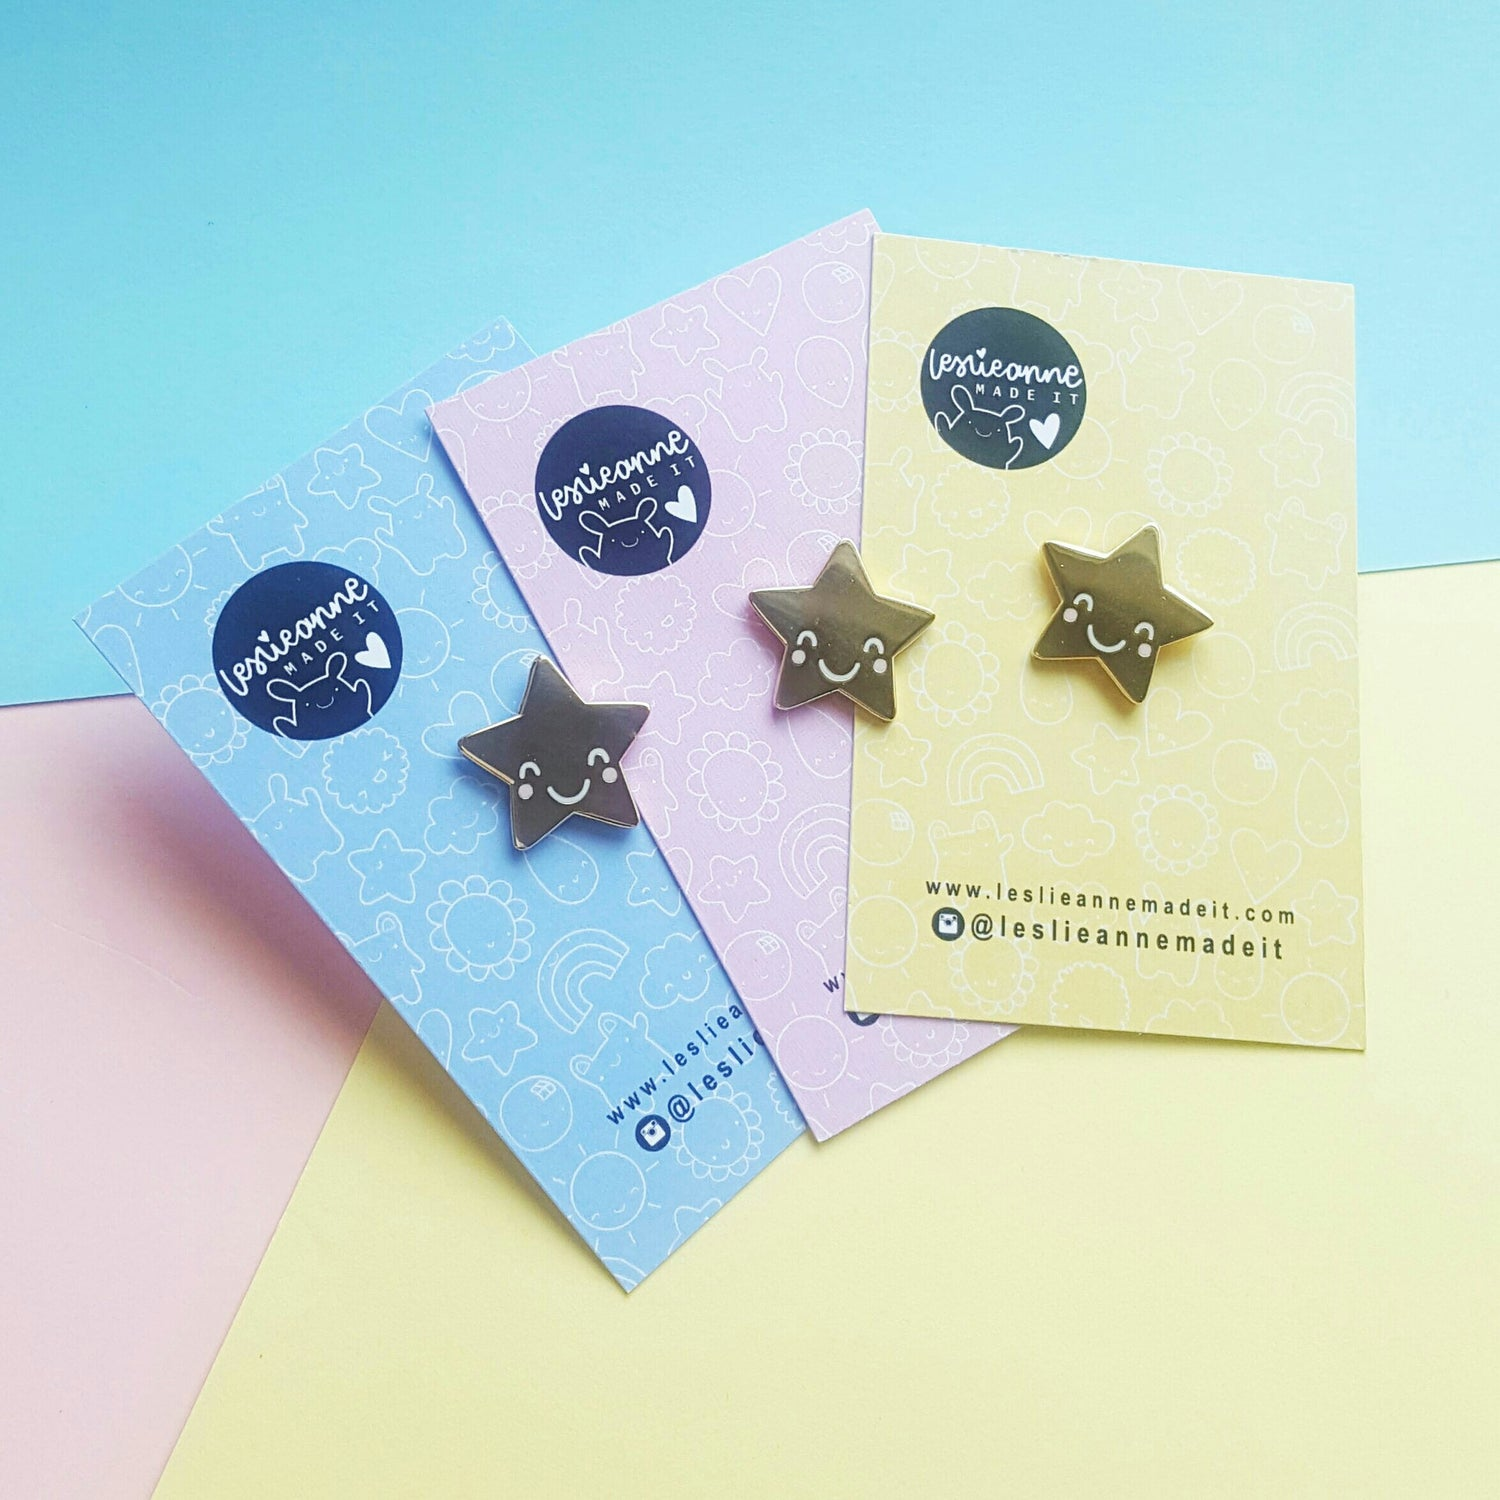 Image of Happy Little Gold Star Hard Enamel Pin